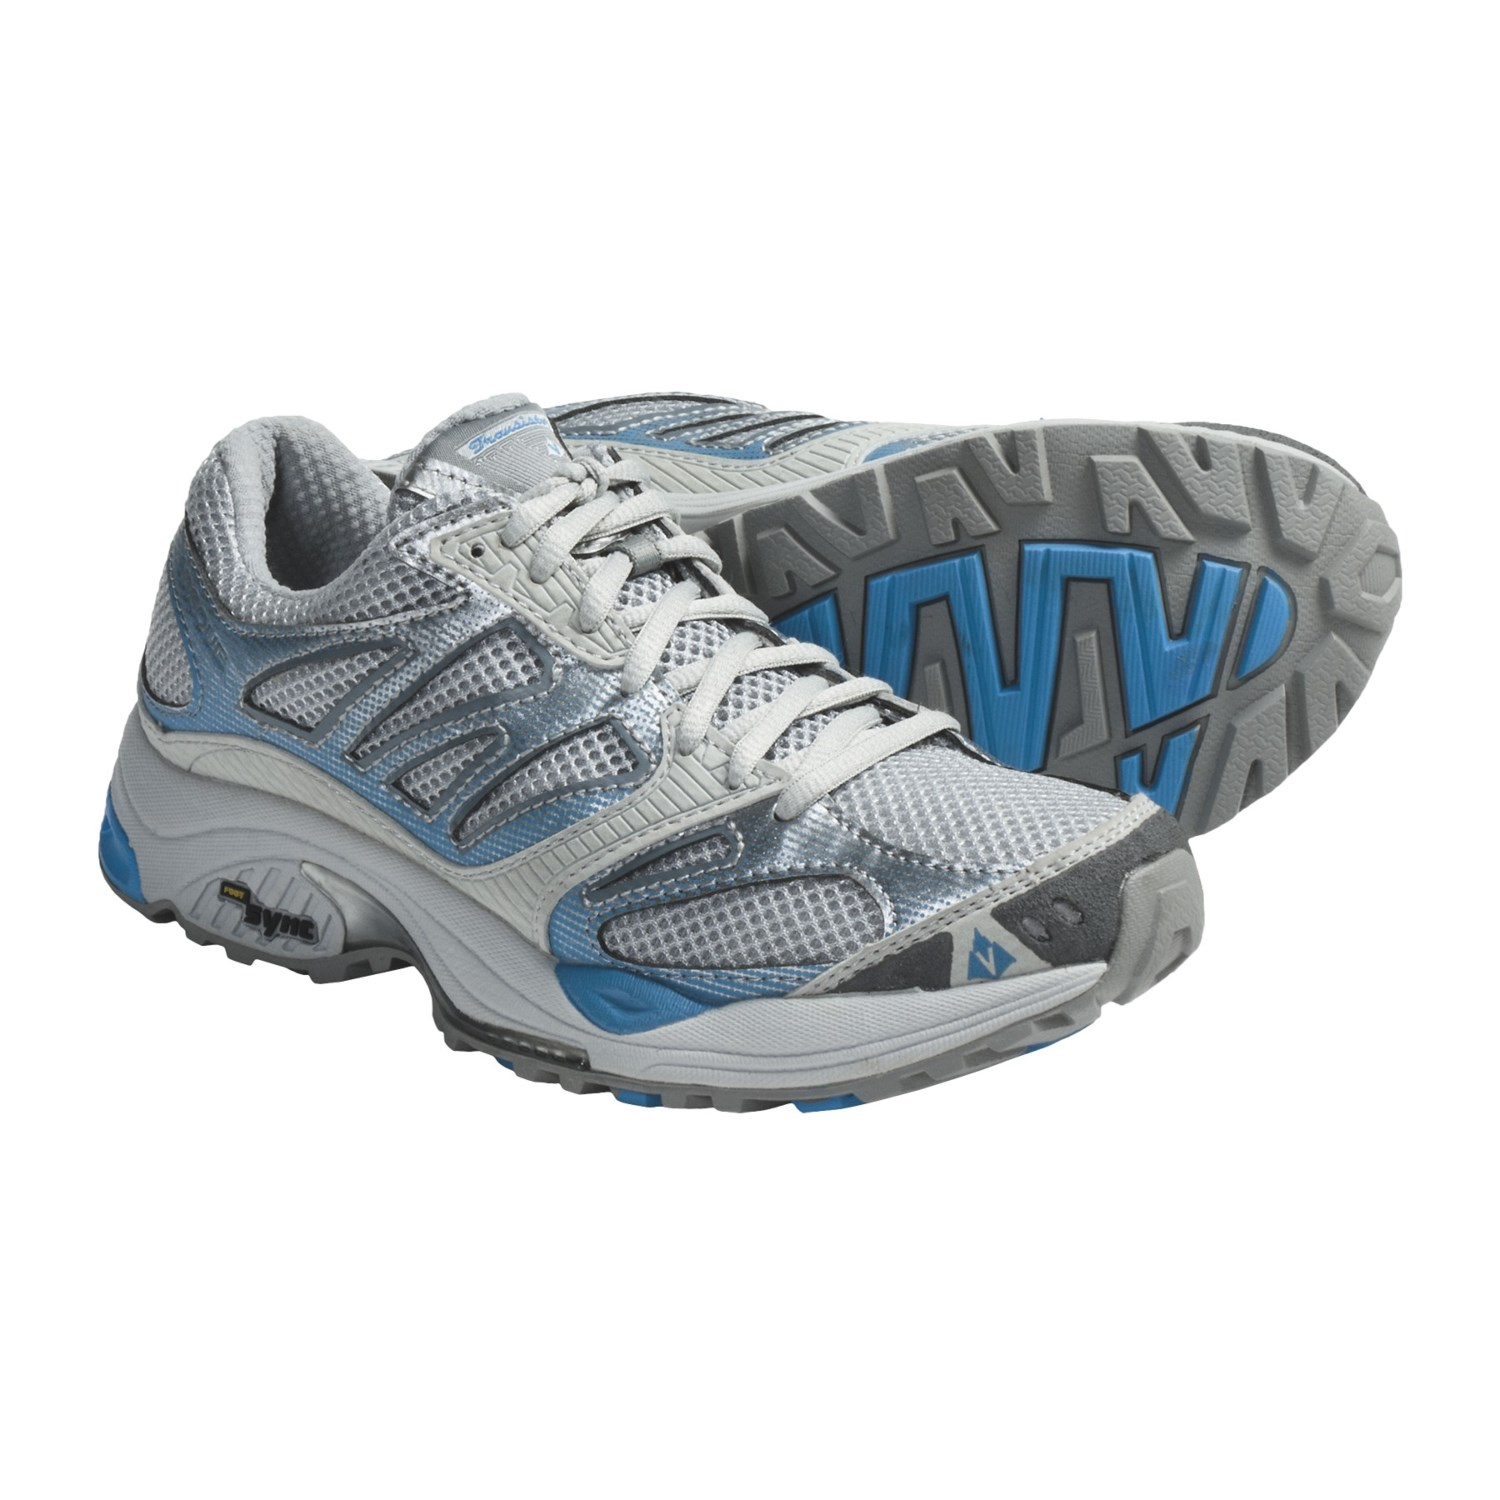 Vasque Transistor FS Trail Running Shoes (For Women) in Glacier Grey